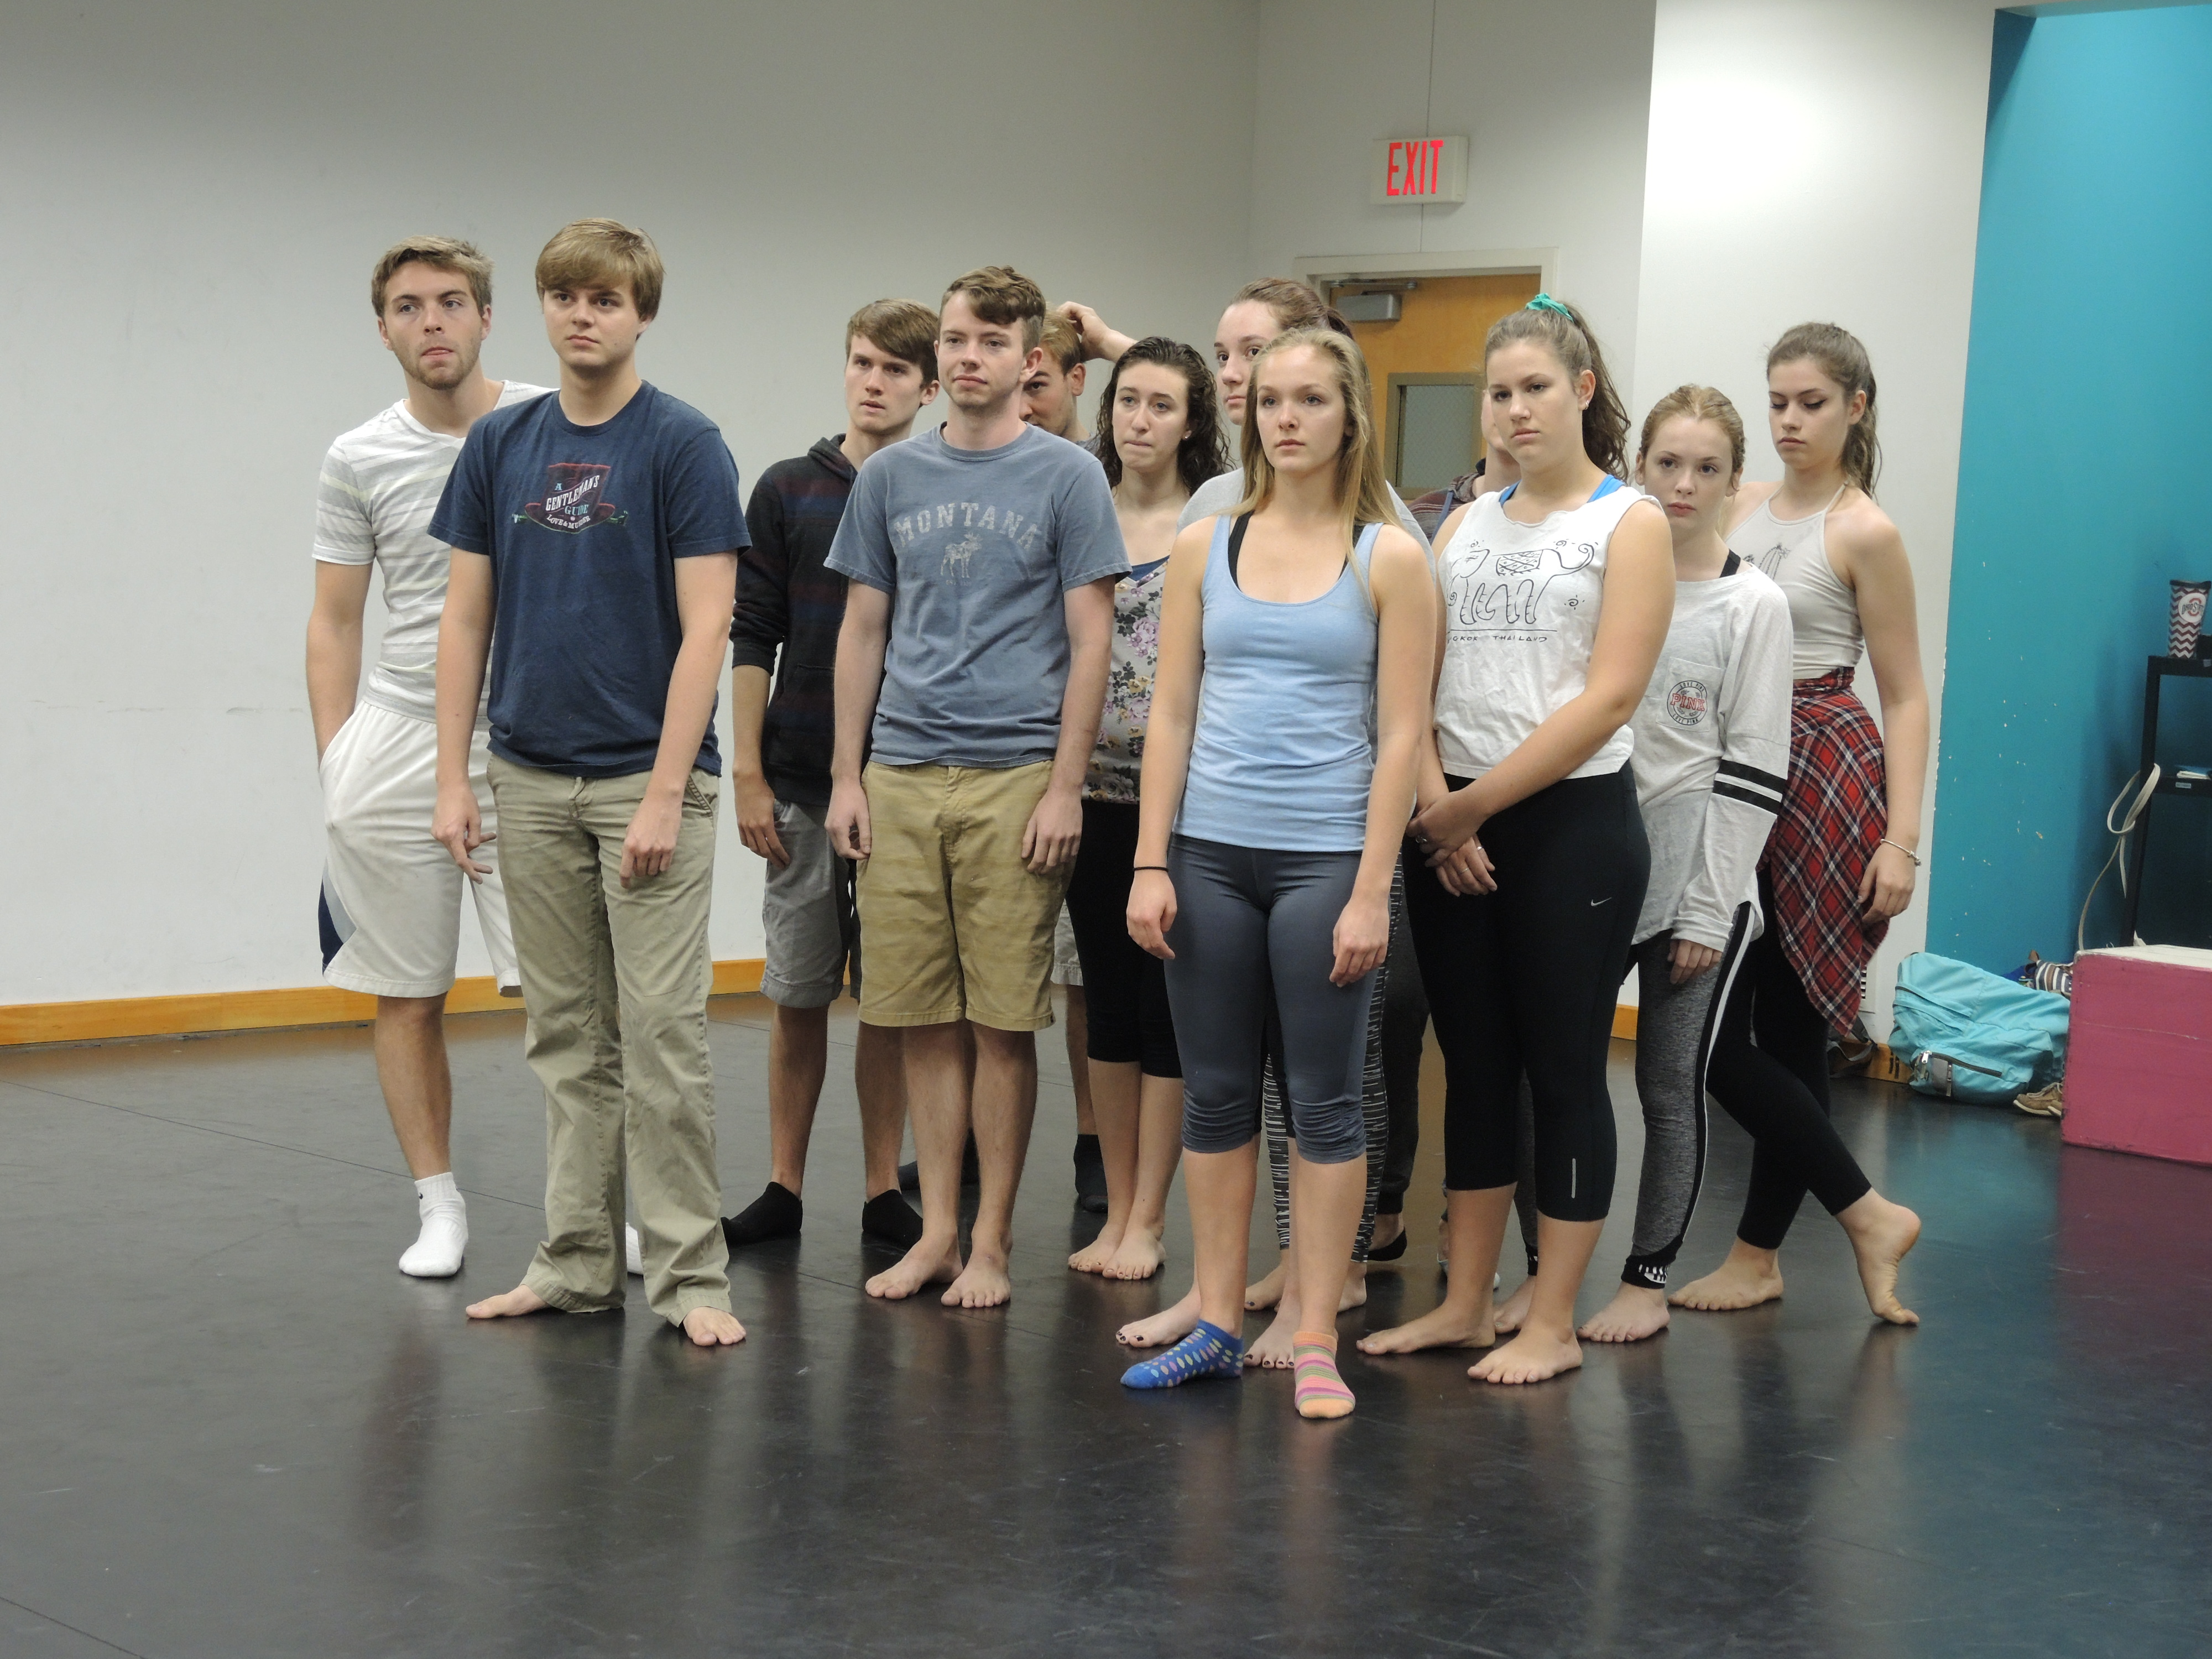 I observed these students in an Acting 150 class today.